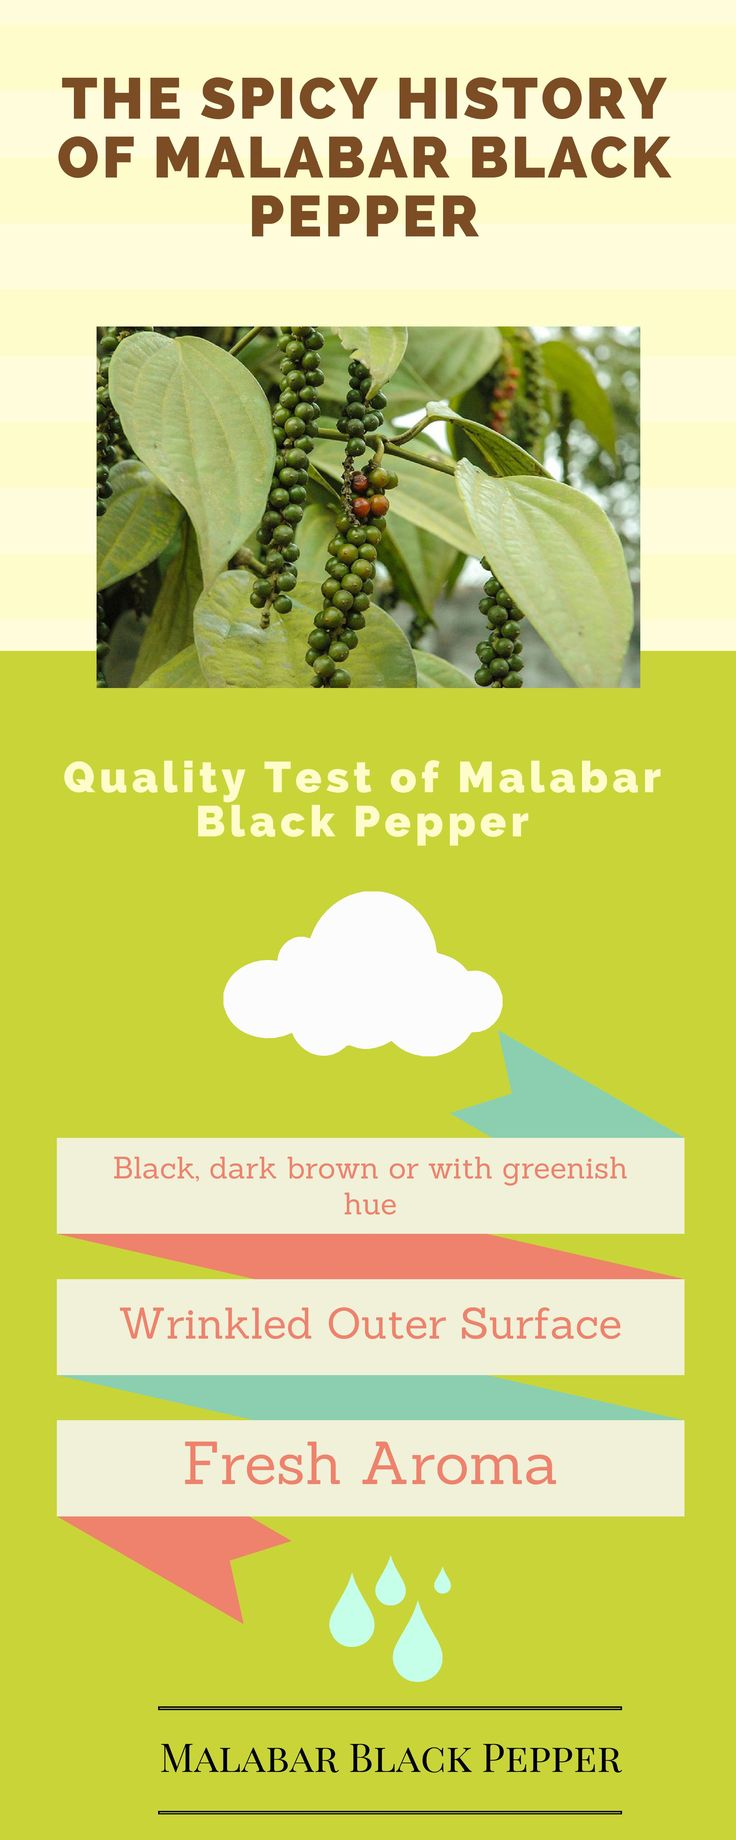 Rich fragrance and aroma of Malabar Black Pepper has attracted people around the world to use it in their signature dishes.